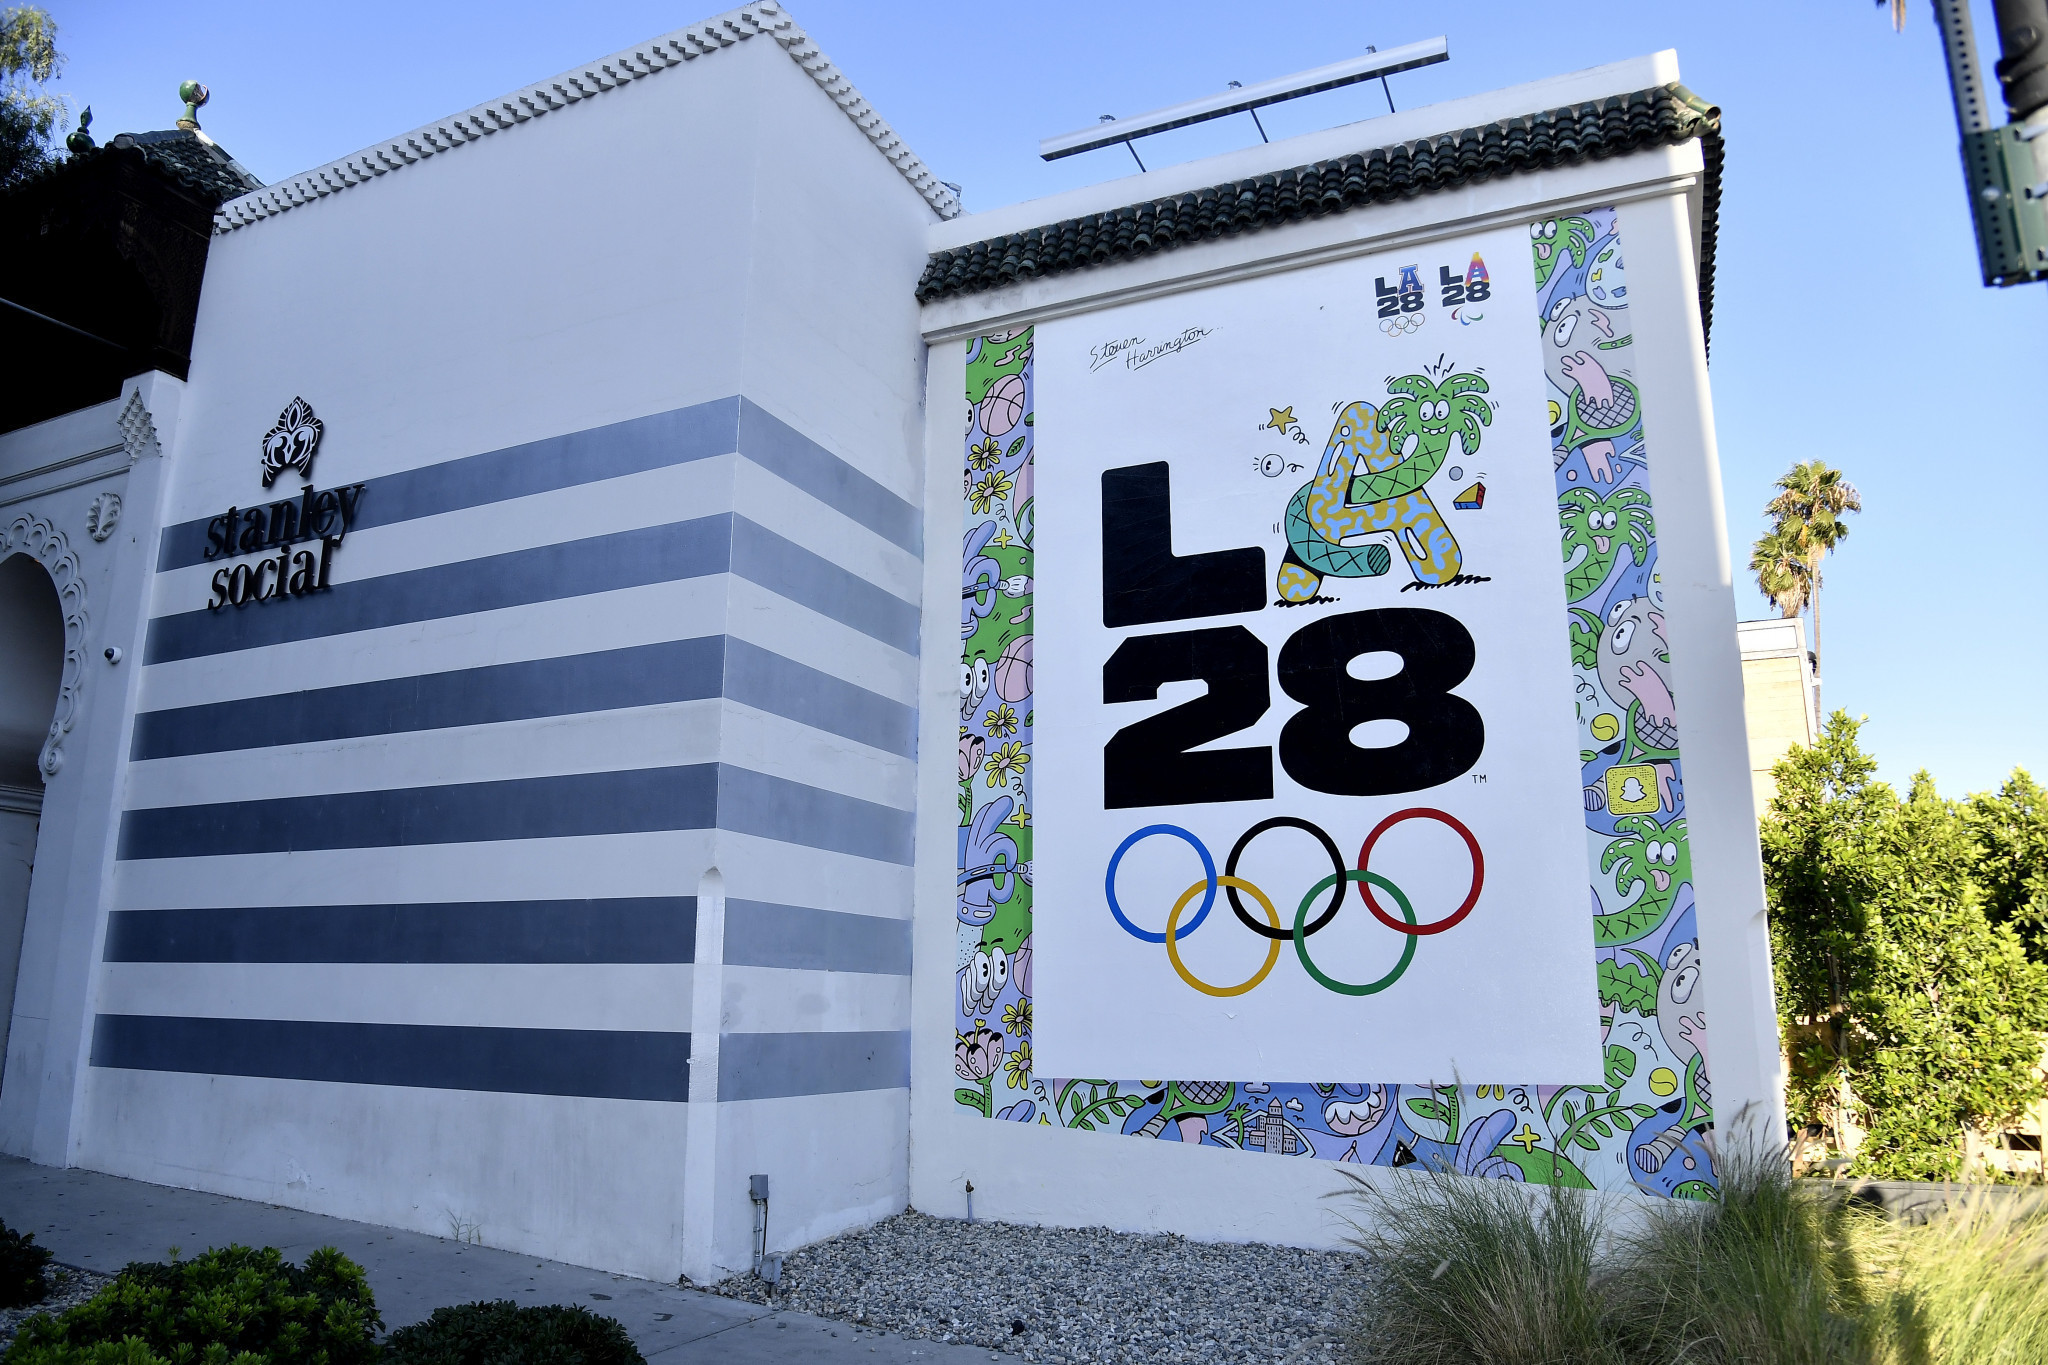 Los Angeles Council votes to join safety Cooperative for 2028 Games despite dissenting voices